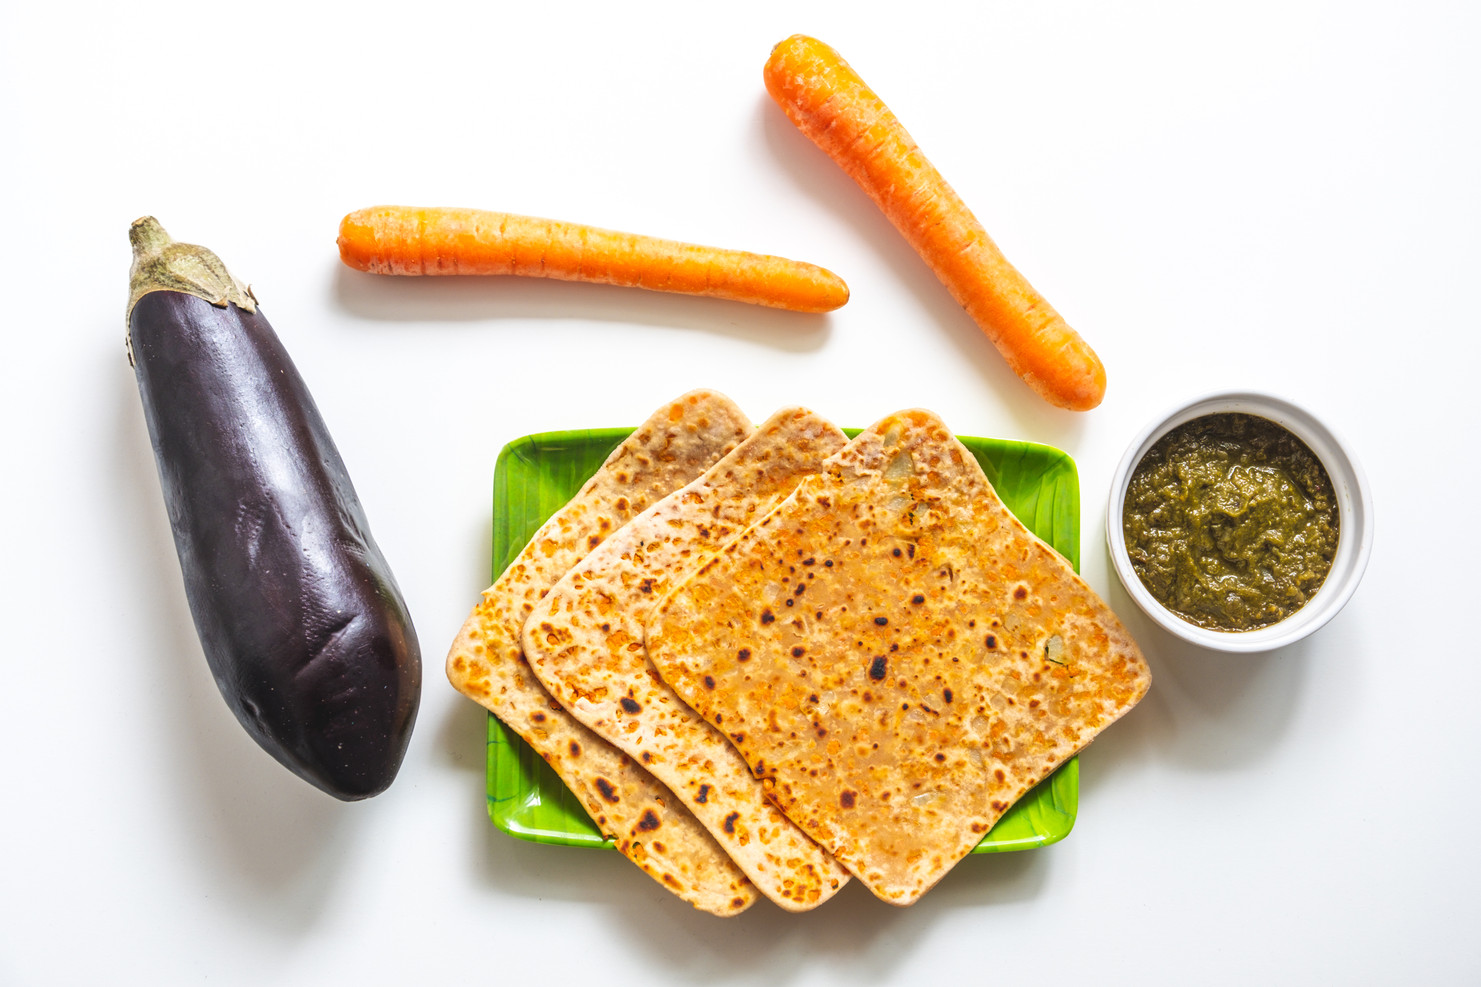 Carrot chapati with eggplant bajji